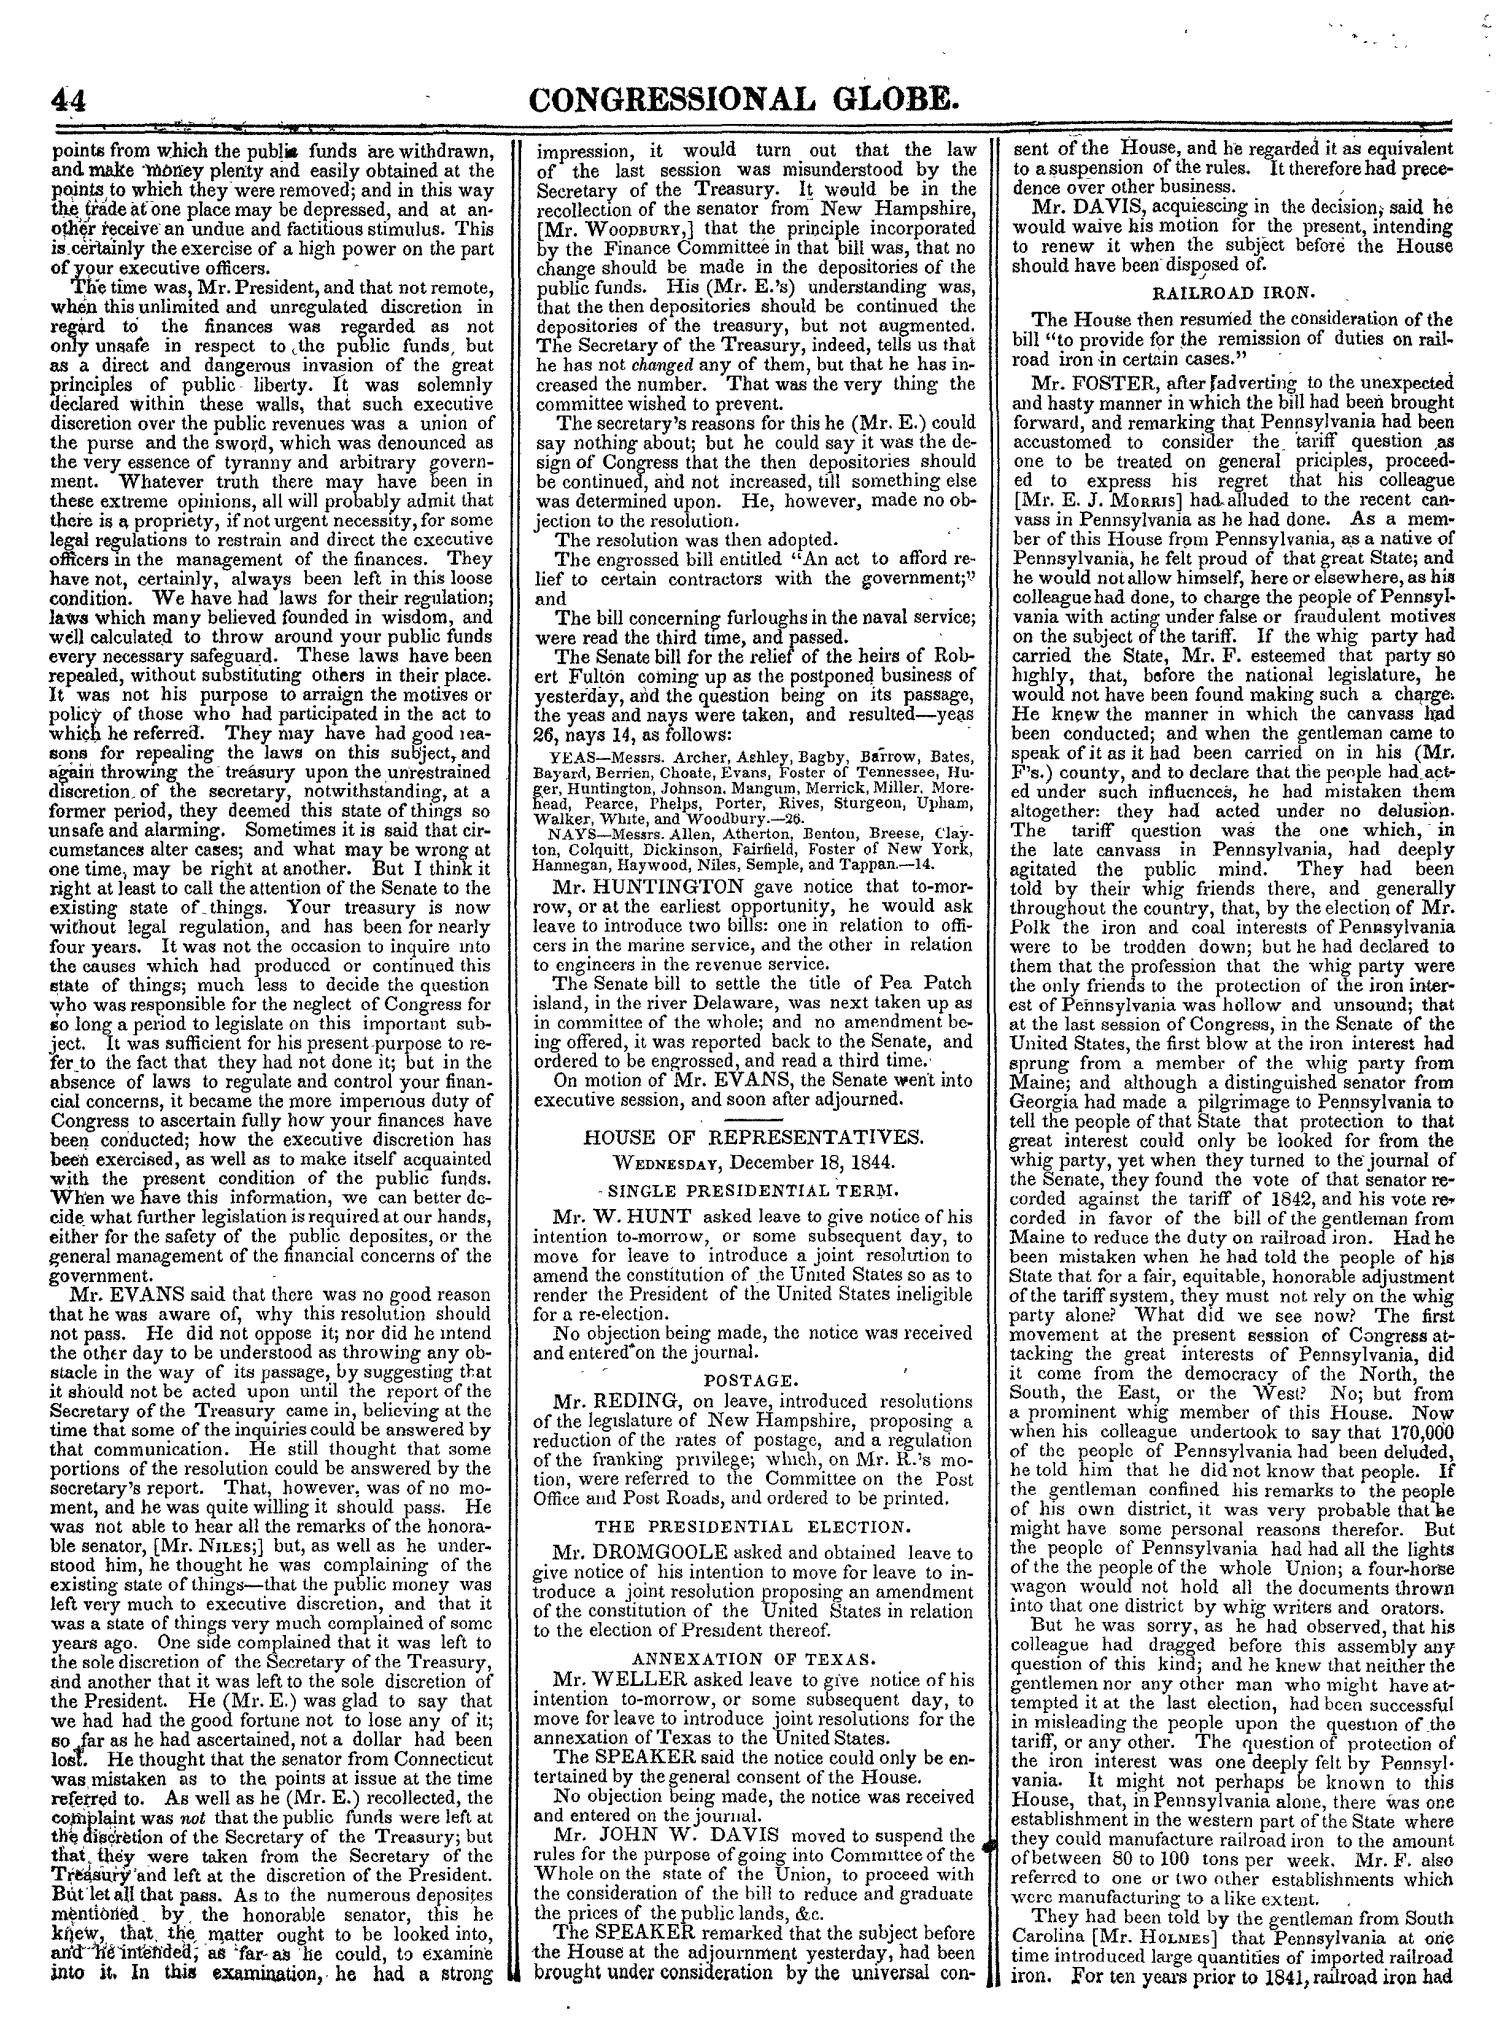 The Congressional Globe, Volume 14: Twenty-Eighth Congress, Second Session                                                                                                      44